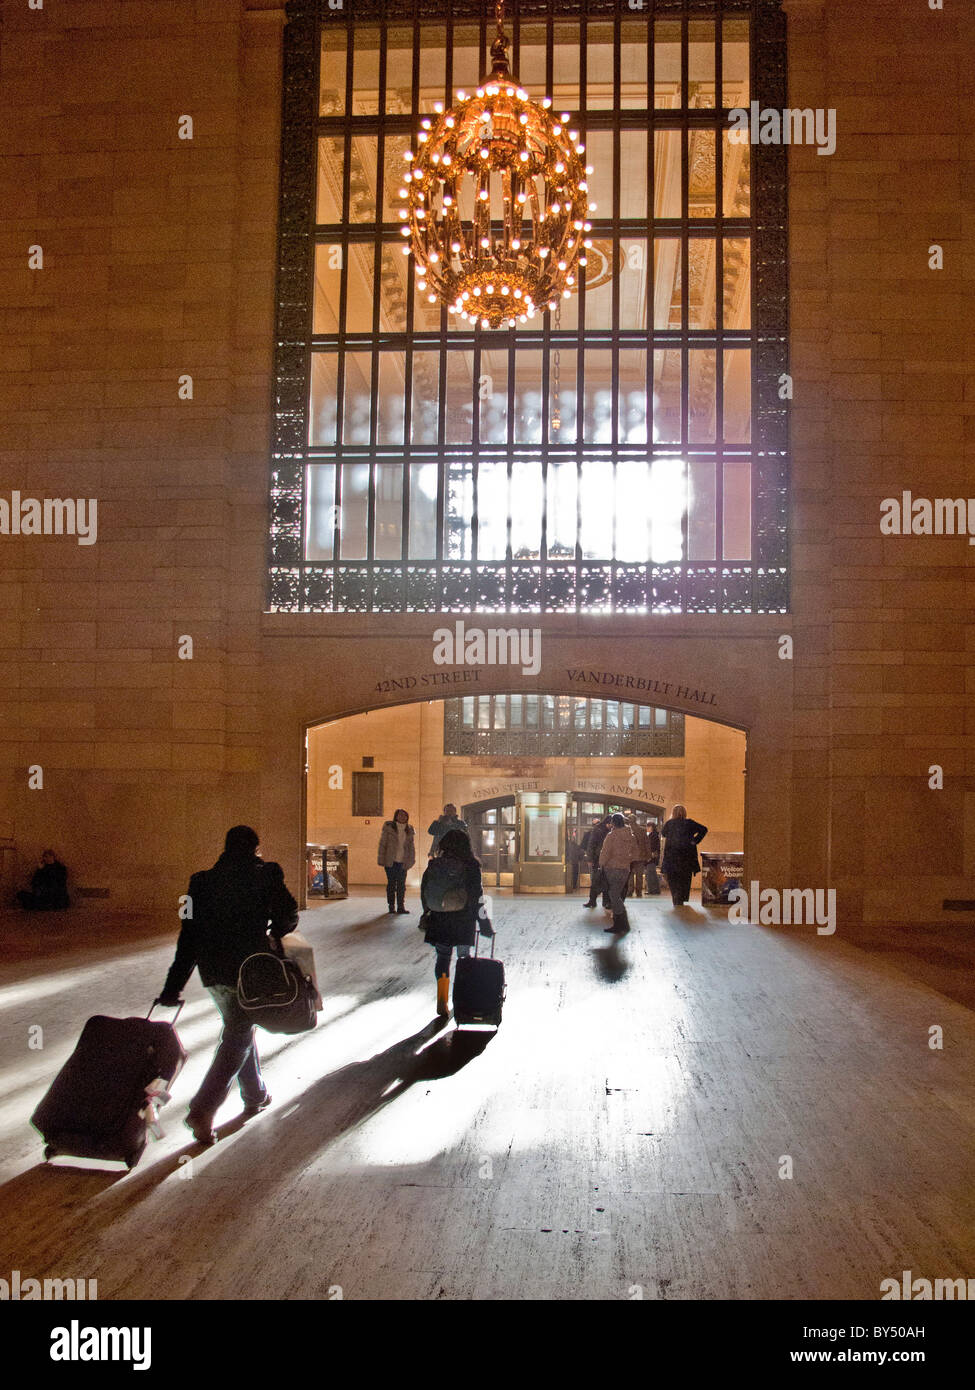 In afternoon sun, travelers with luggage head for the 42nd Street exit of Grand Central Station in midtown Manhattan, - Stock Image